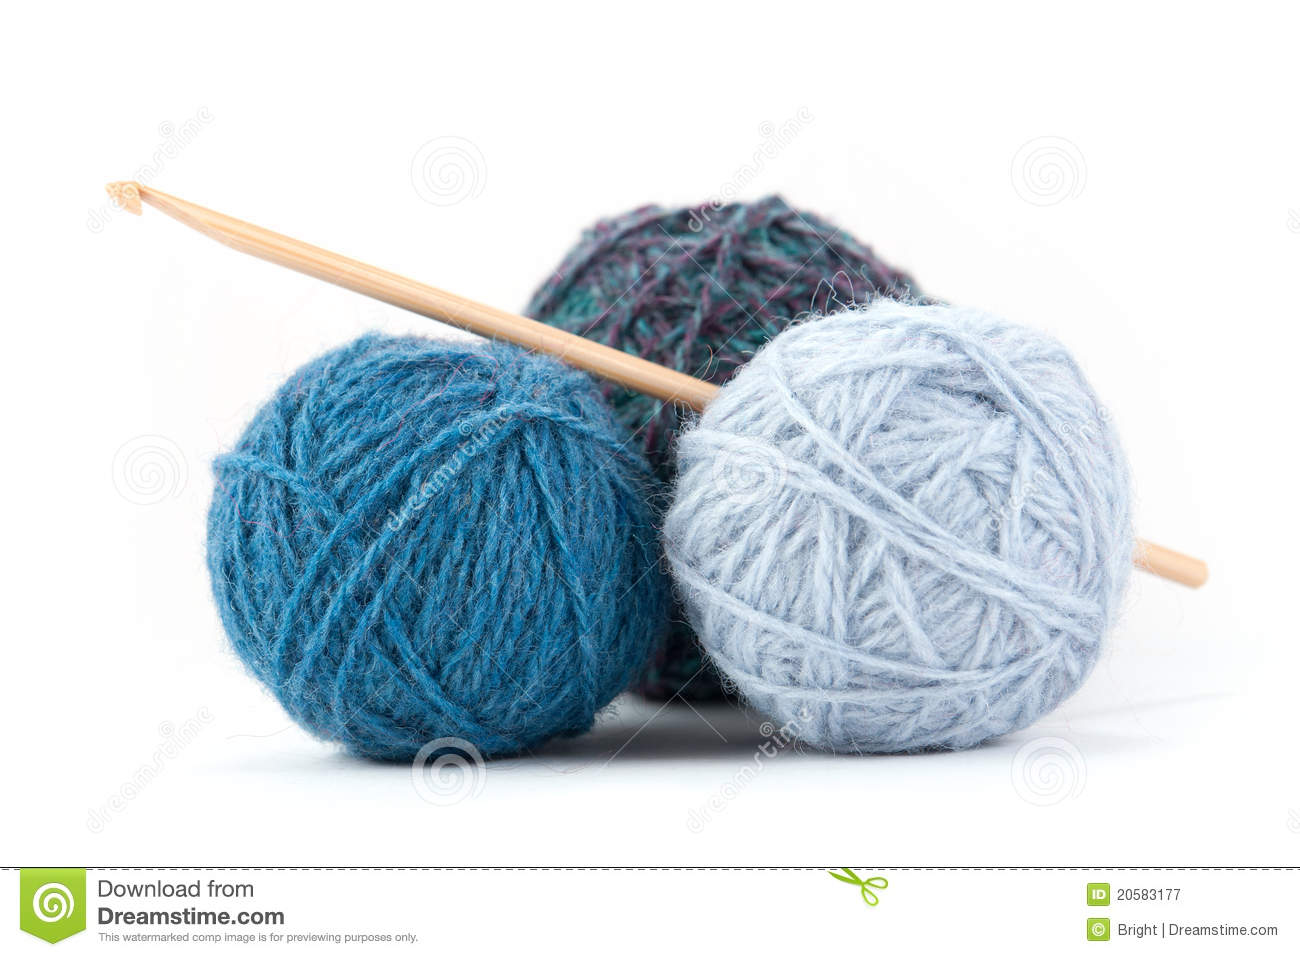 Crocheting Accessories : Crochet Accessories Royalty Free Stock Photography - Image: 20583177